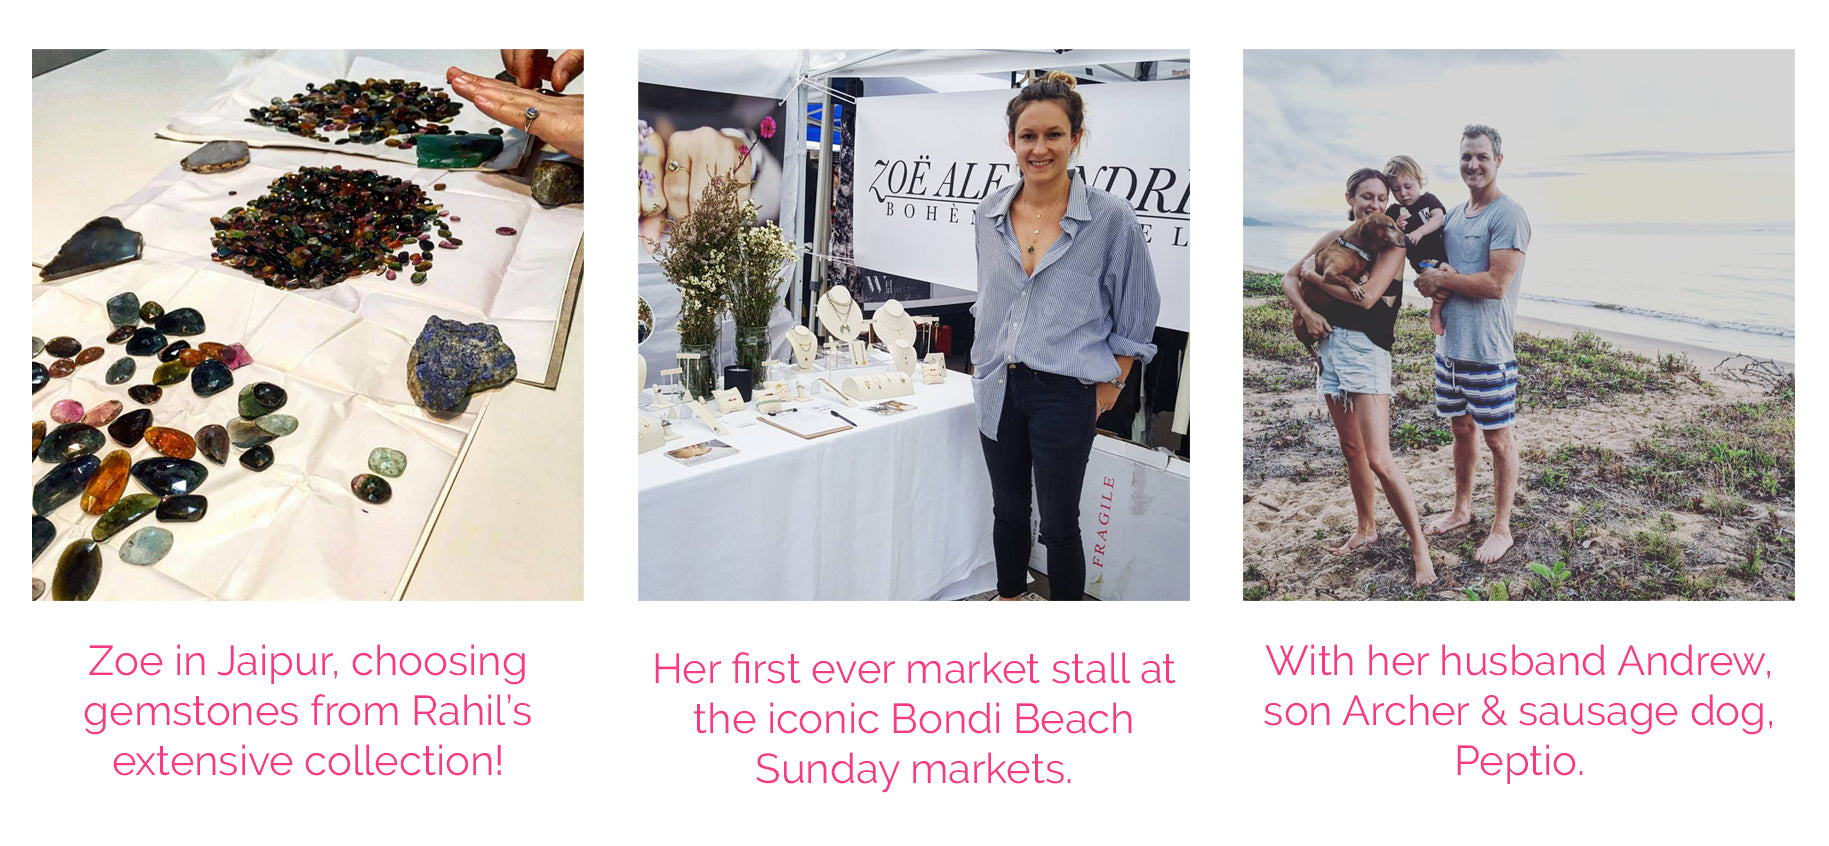 personal photos of Zoe Alexandria, in India, at the Bondi markets and with her family on the beach